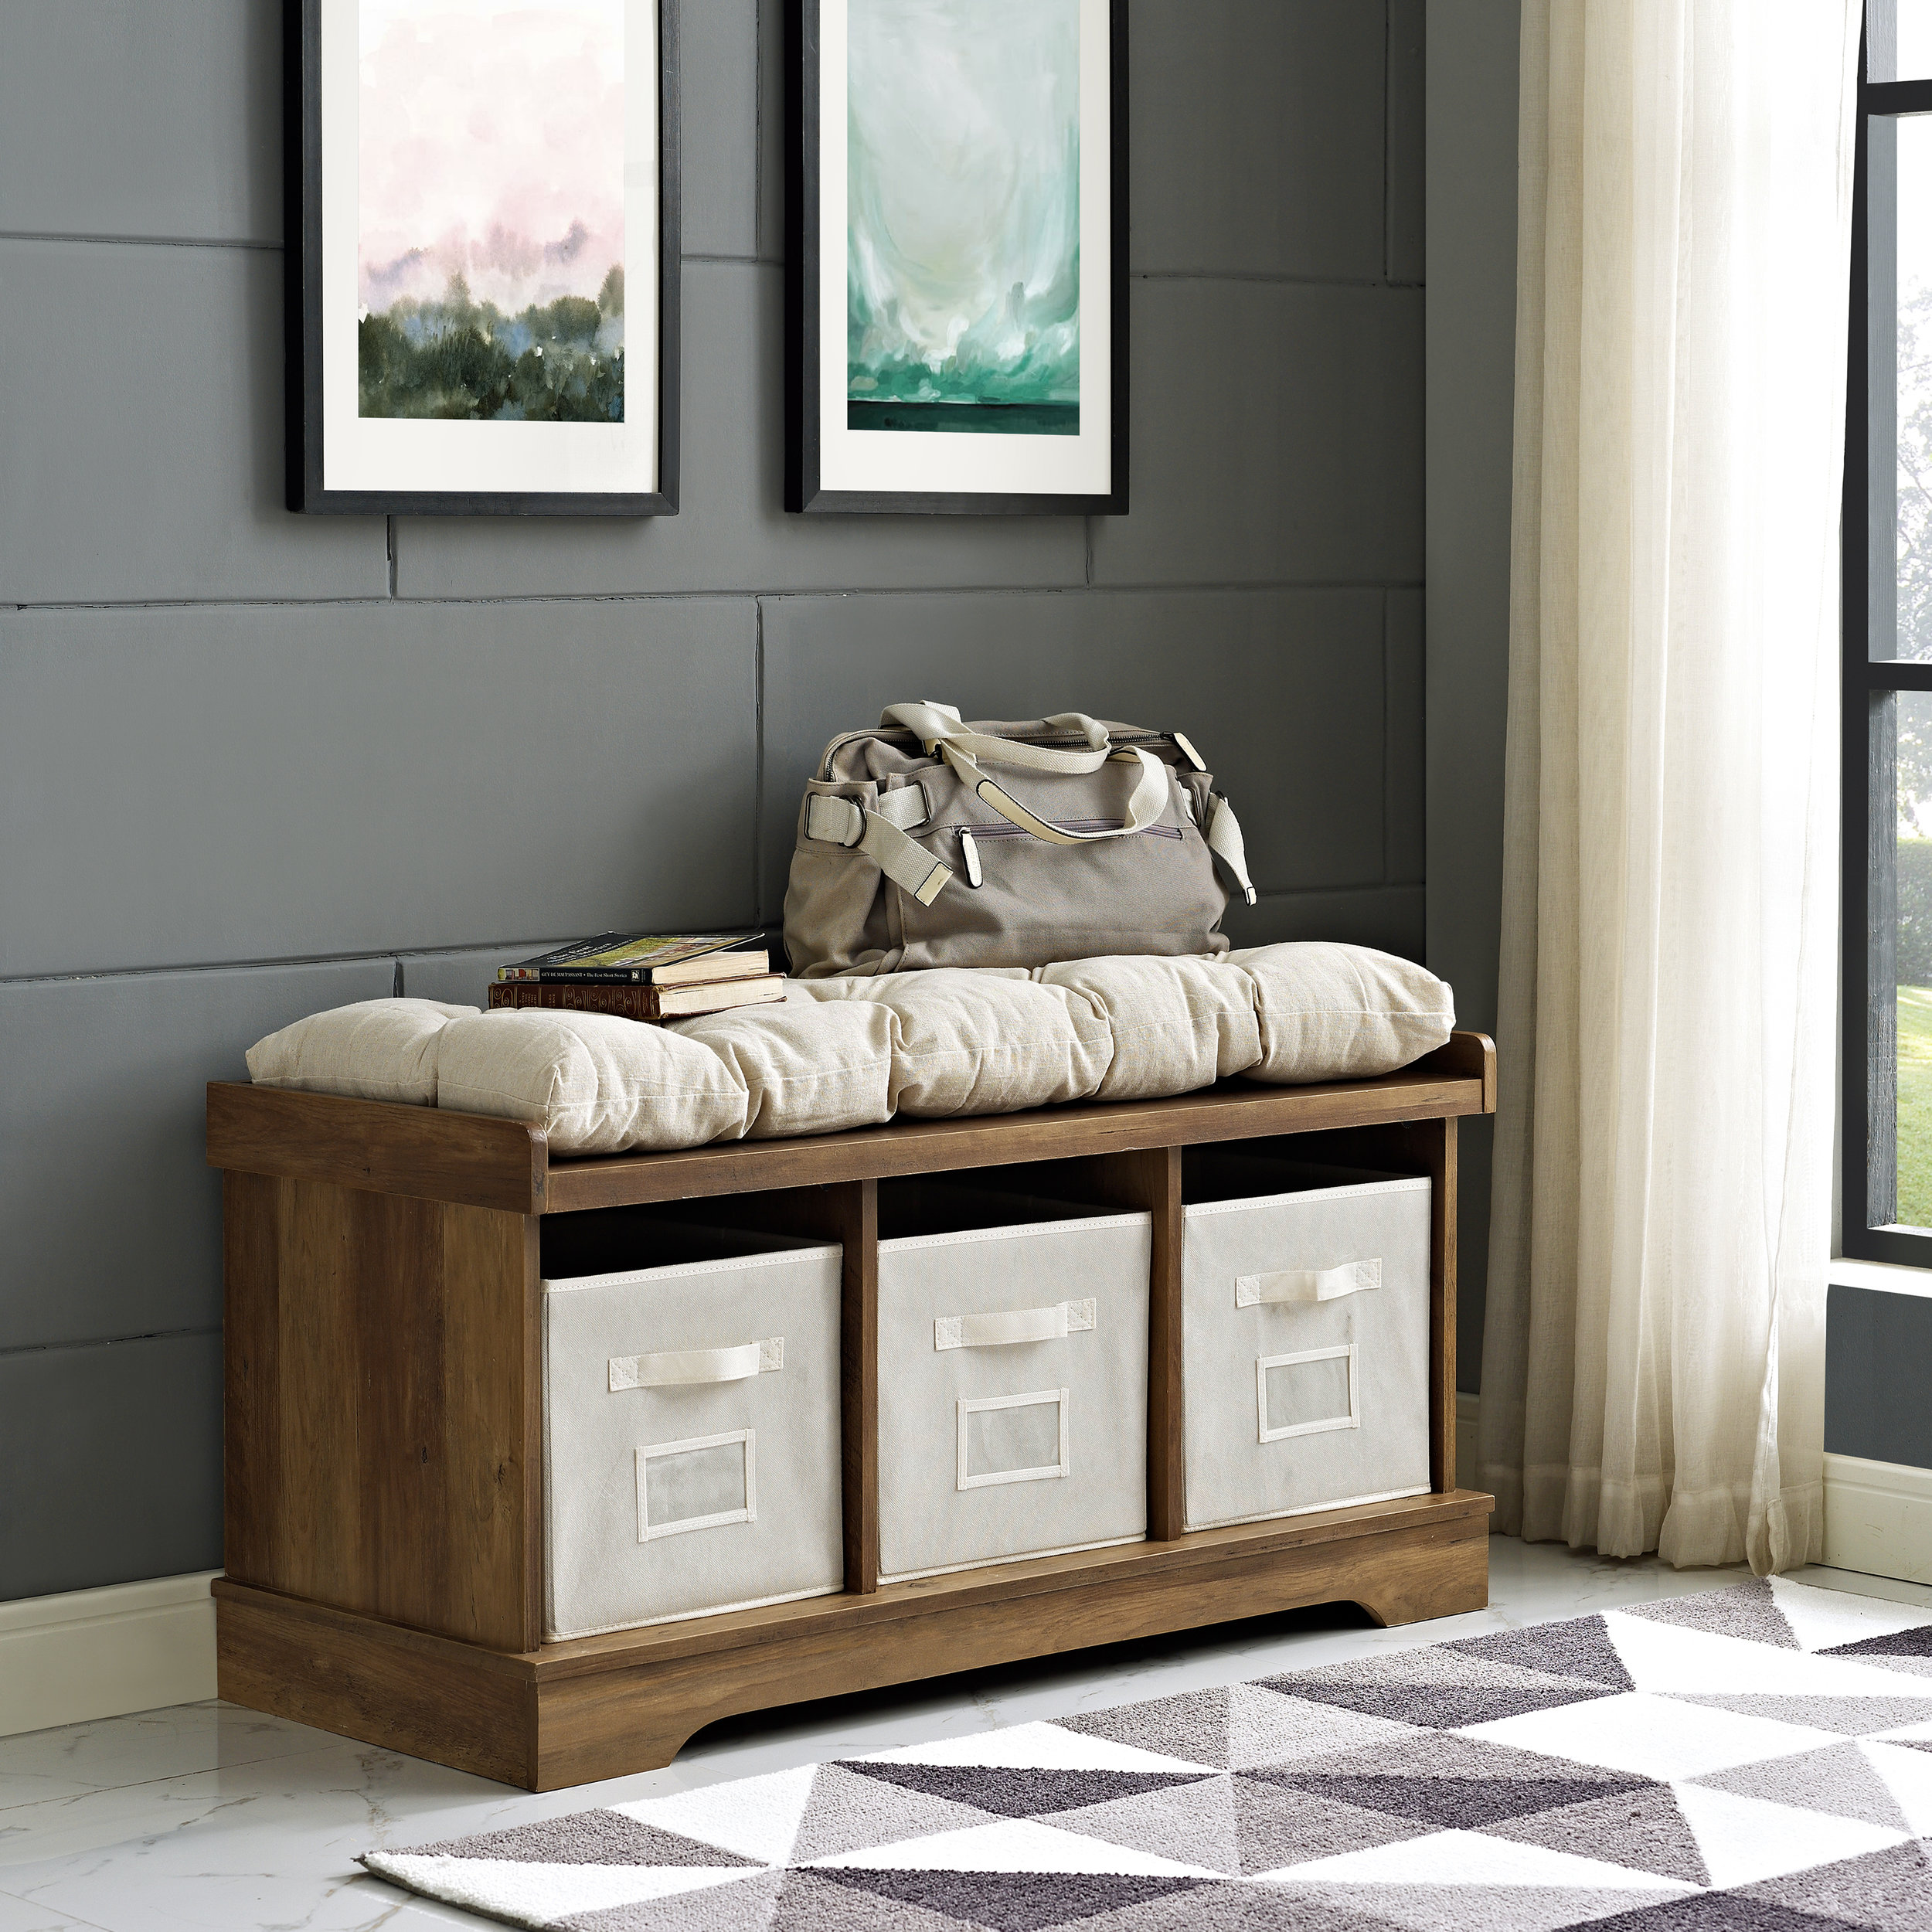 """""""Benches are a must in any household! They are so versatile and perfect for storage. I need all the shoe storage I can get!"""""""